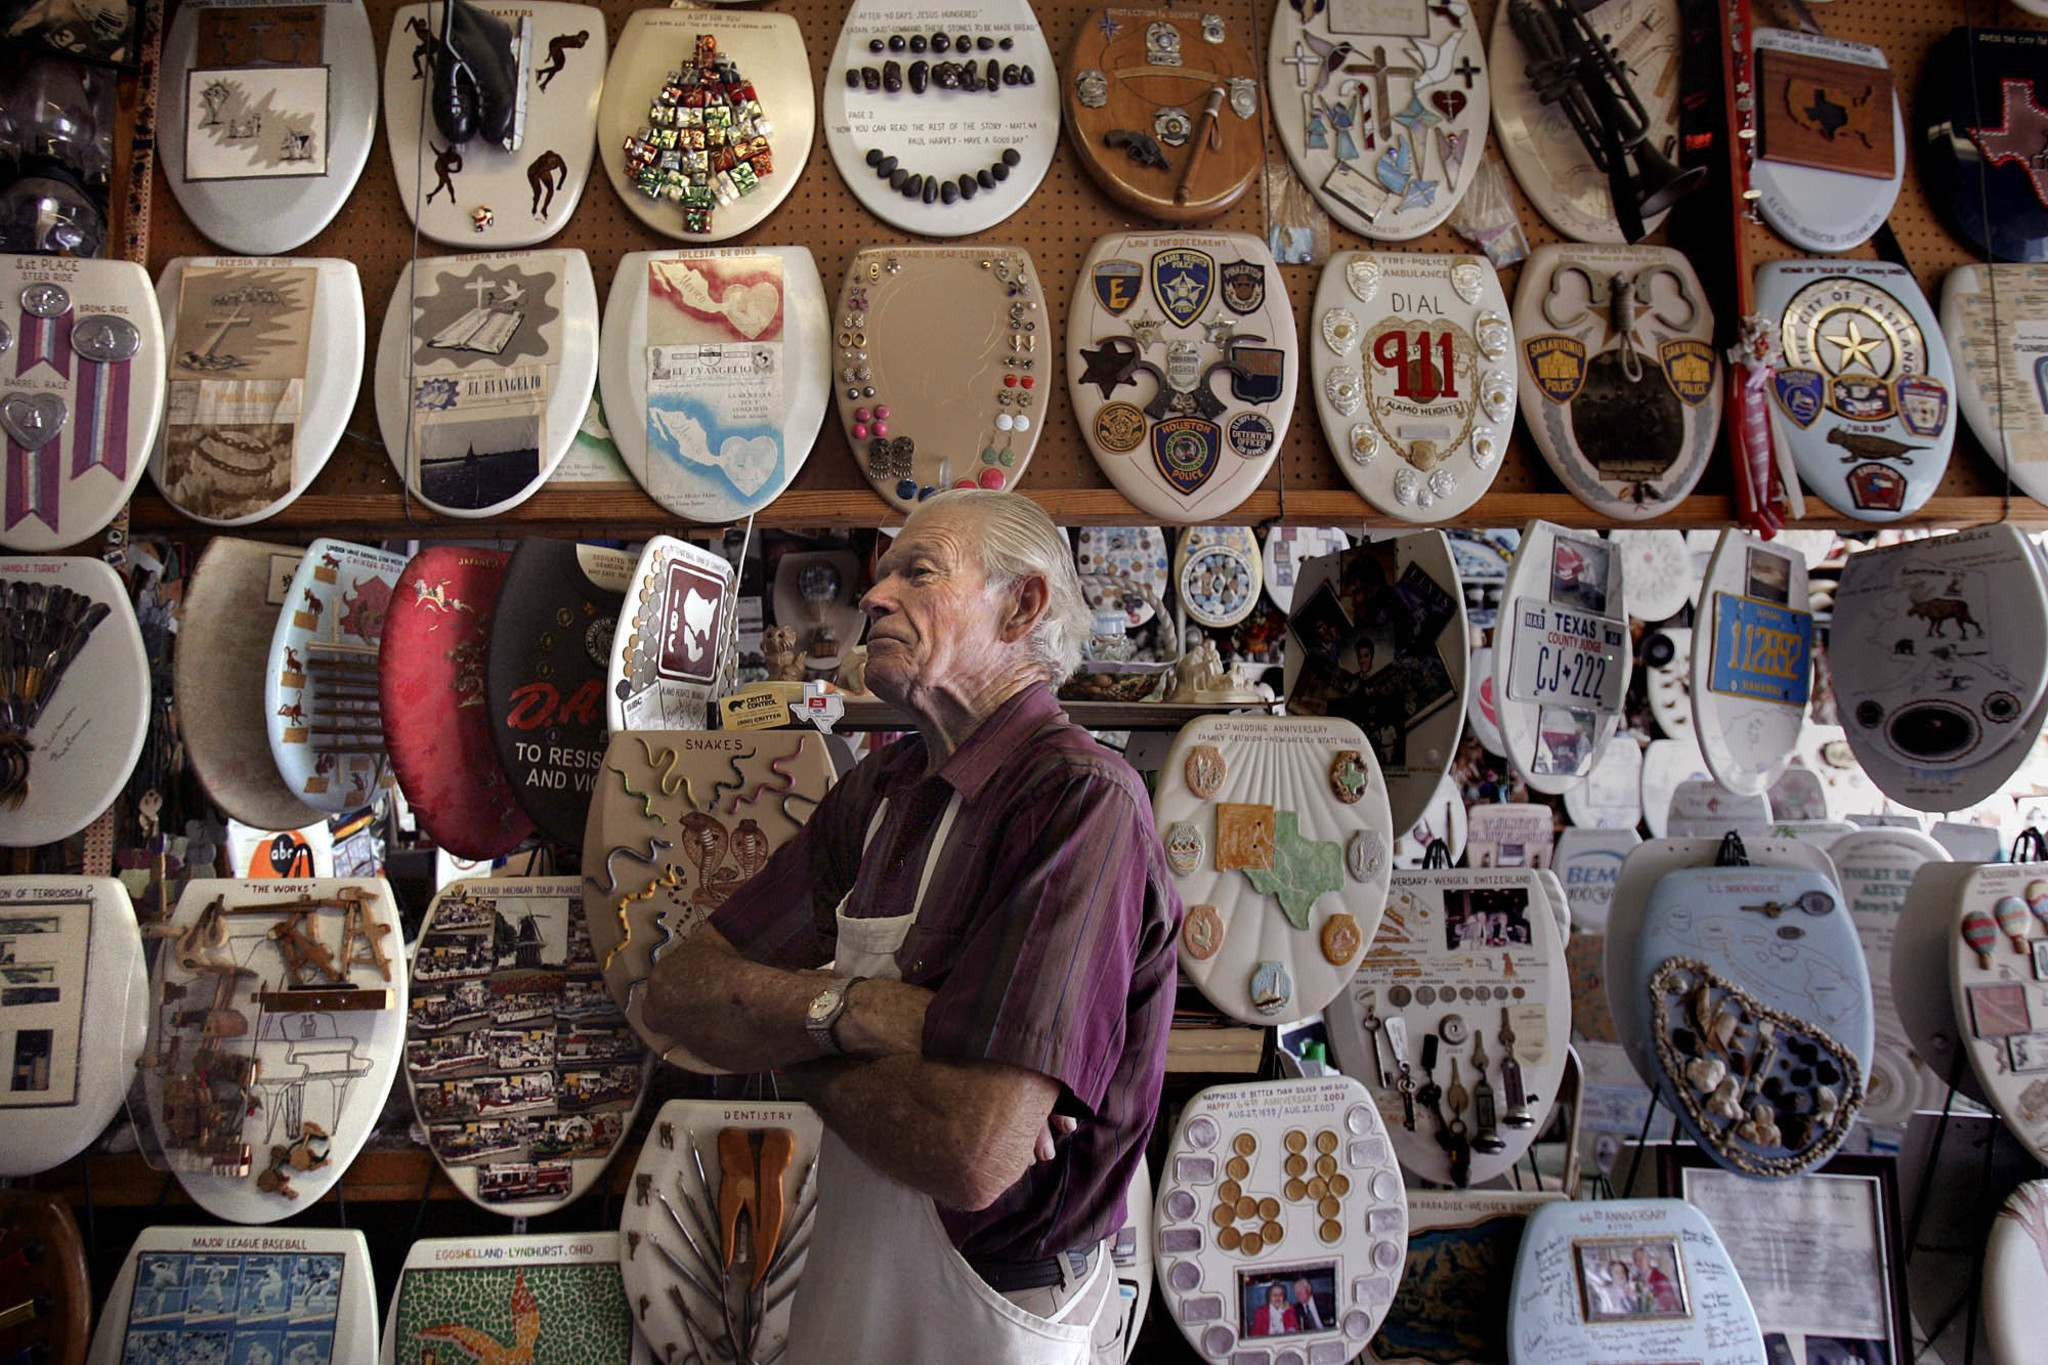 Kin Man Hui / The Associated Press</p><p>For years, Barney Smith created unique art from nearly 1,400 toilet seats and his self-made toilet seat art museum in The Colony, Texas remains well known as an unusual place to visit. Smith died last year at age 98 — only a few weeks after cutting the ribbon at a large new location for his museum.</p></p>